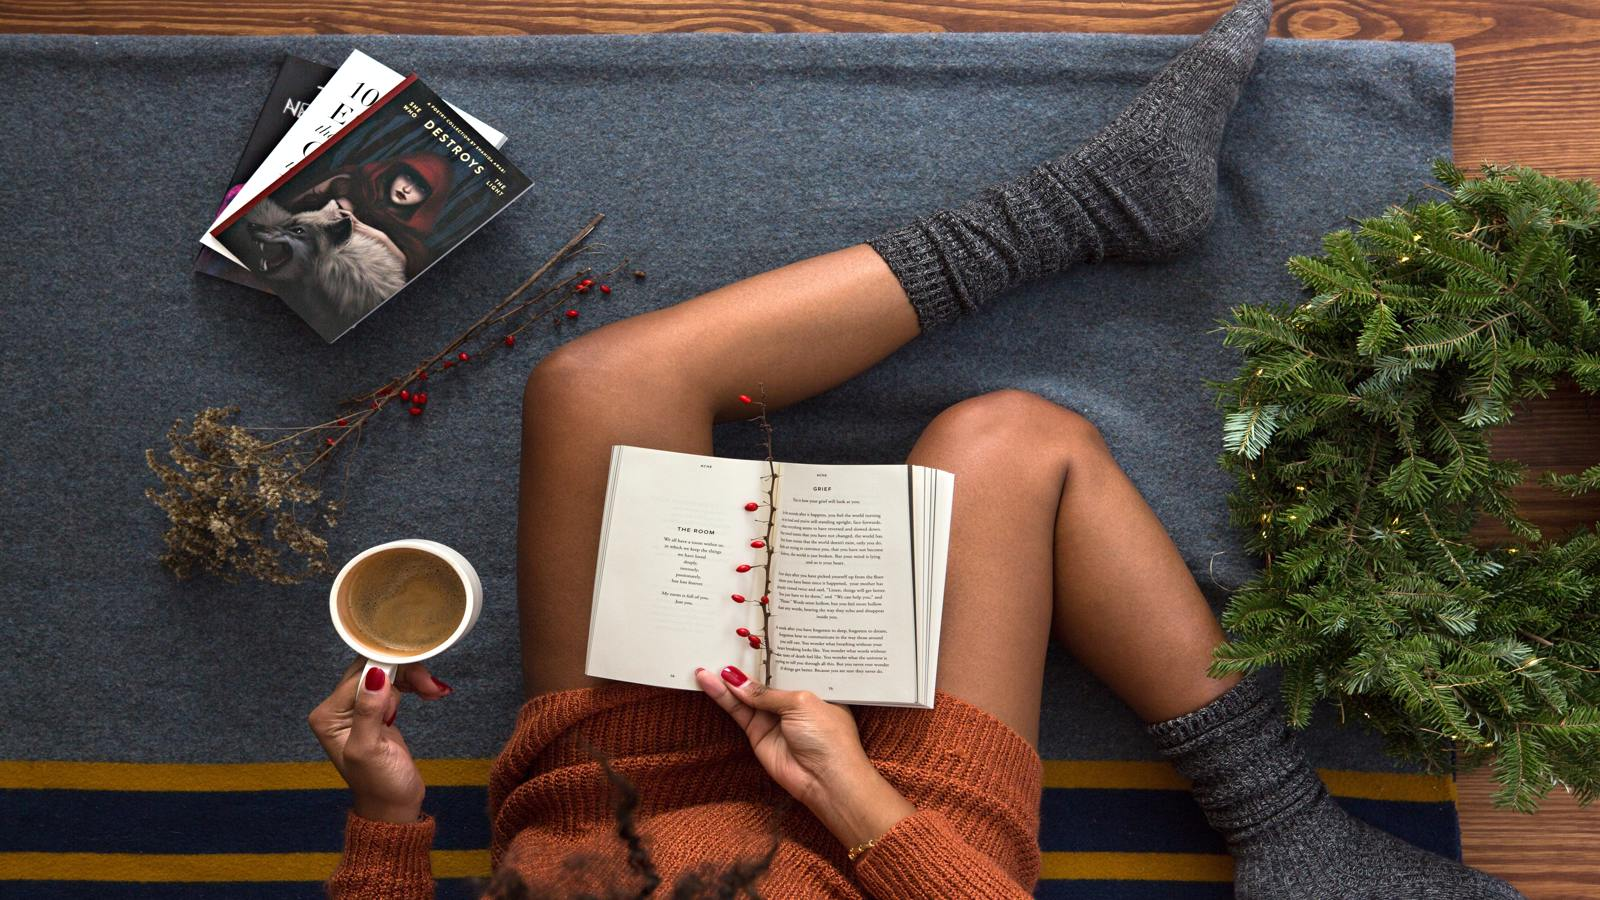 The Bookworm's Guide: 6 Outstanding Books to Help Your Learn English